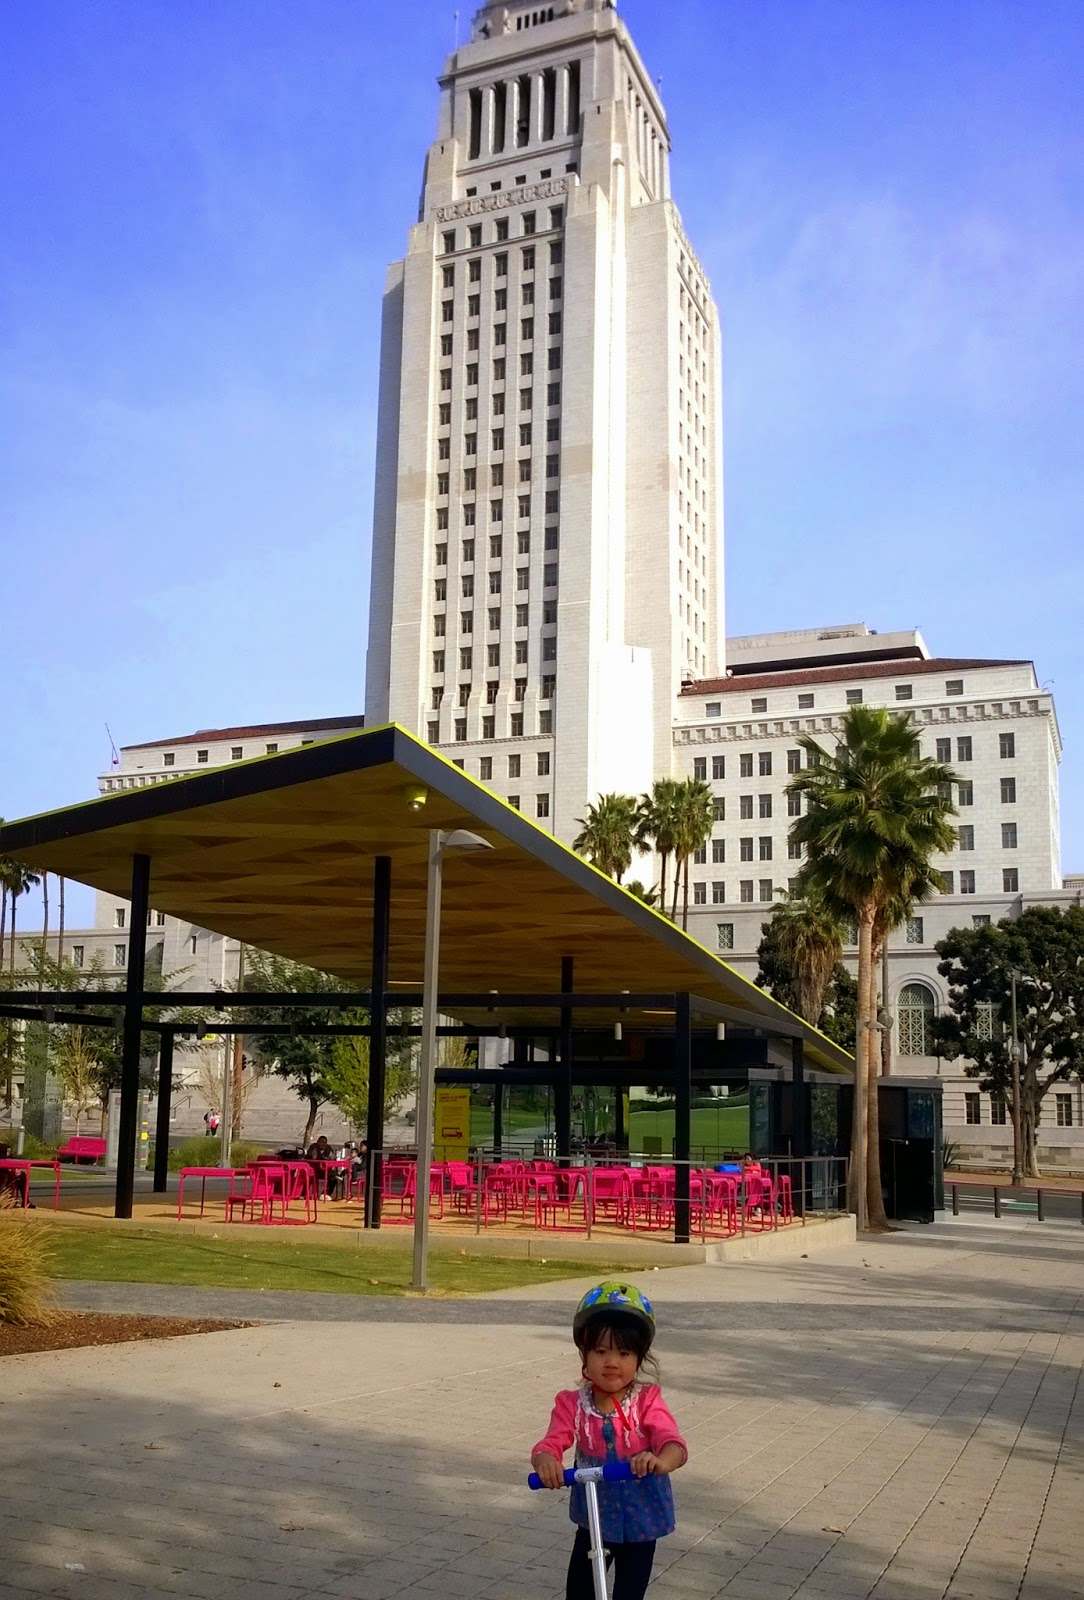 Grand Park and City Hall in downtown, L.A.